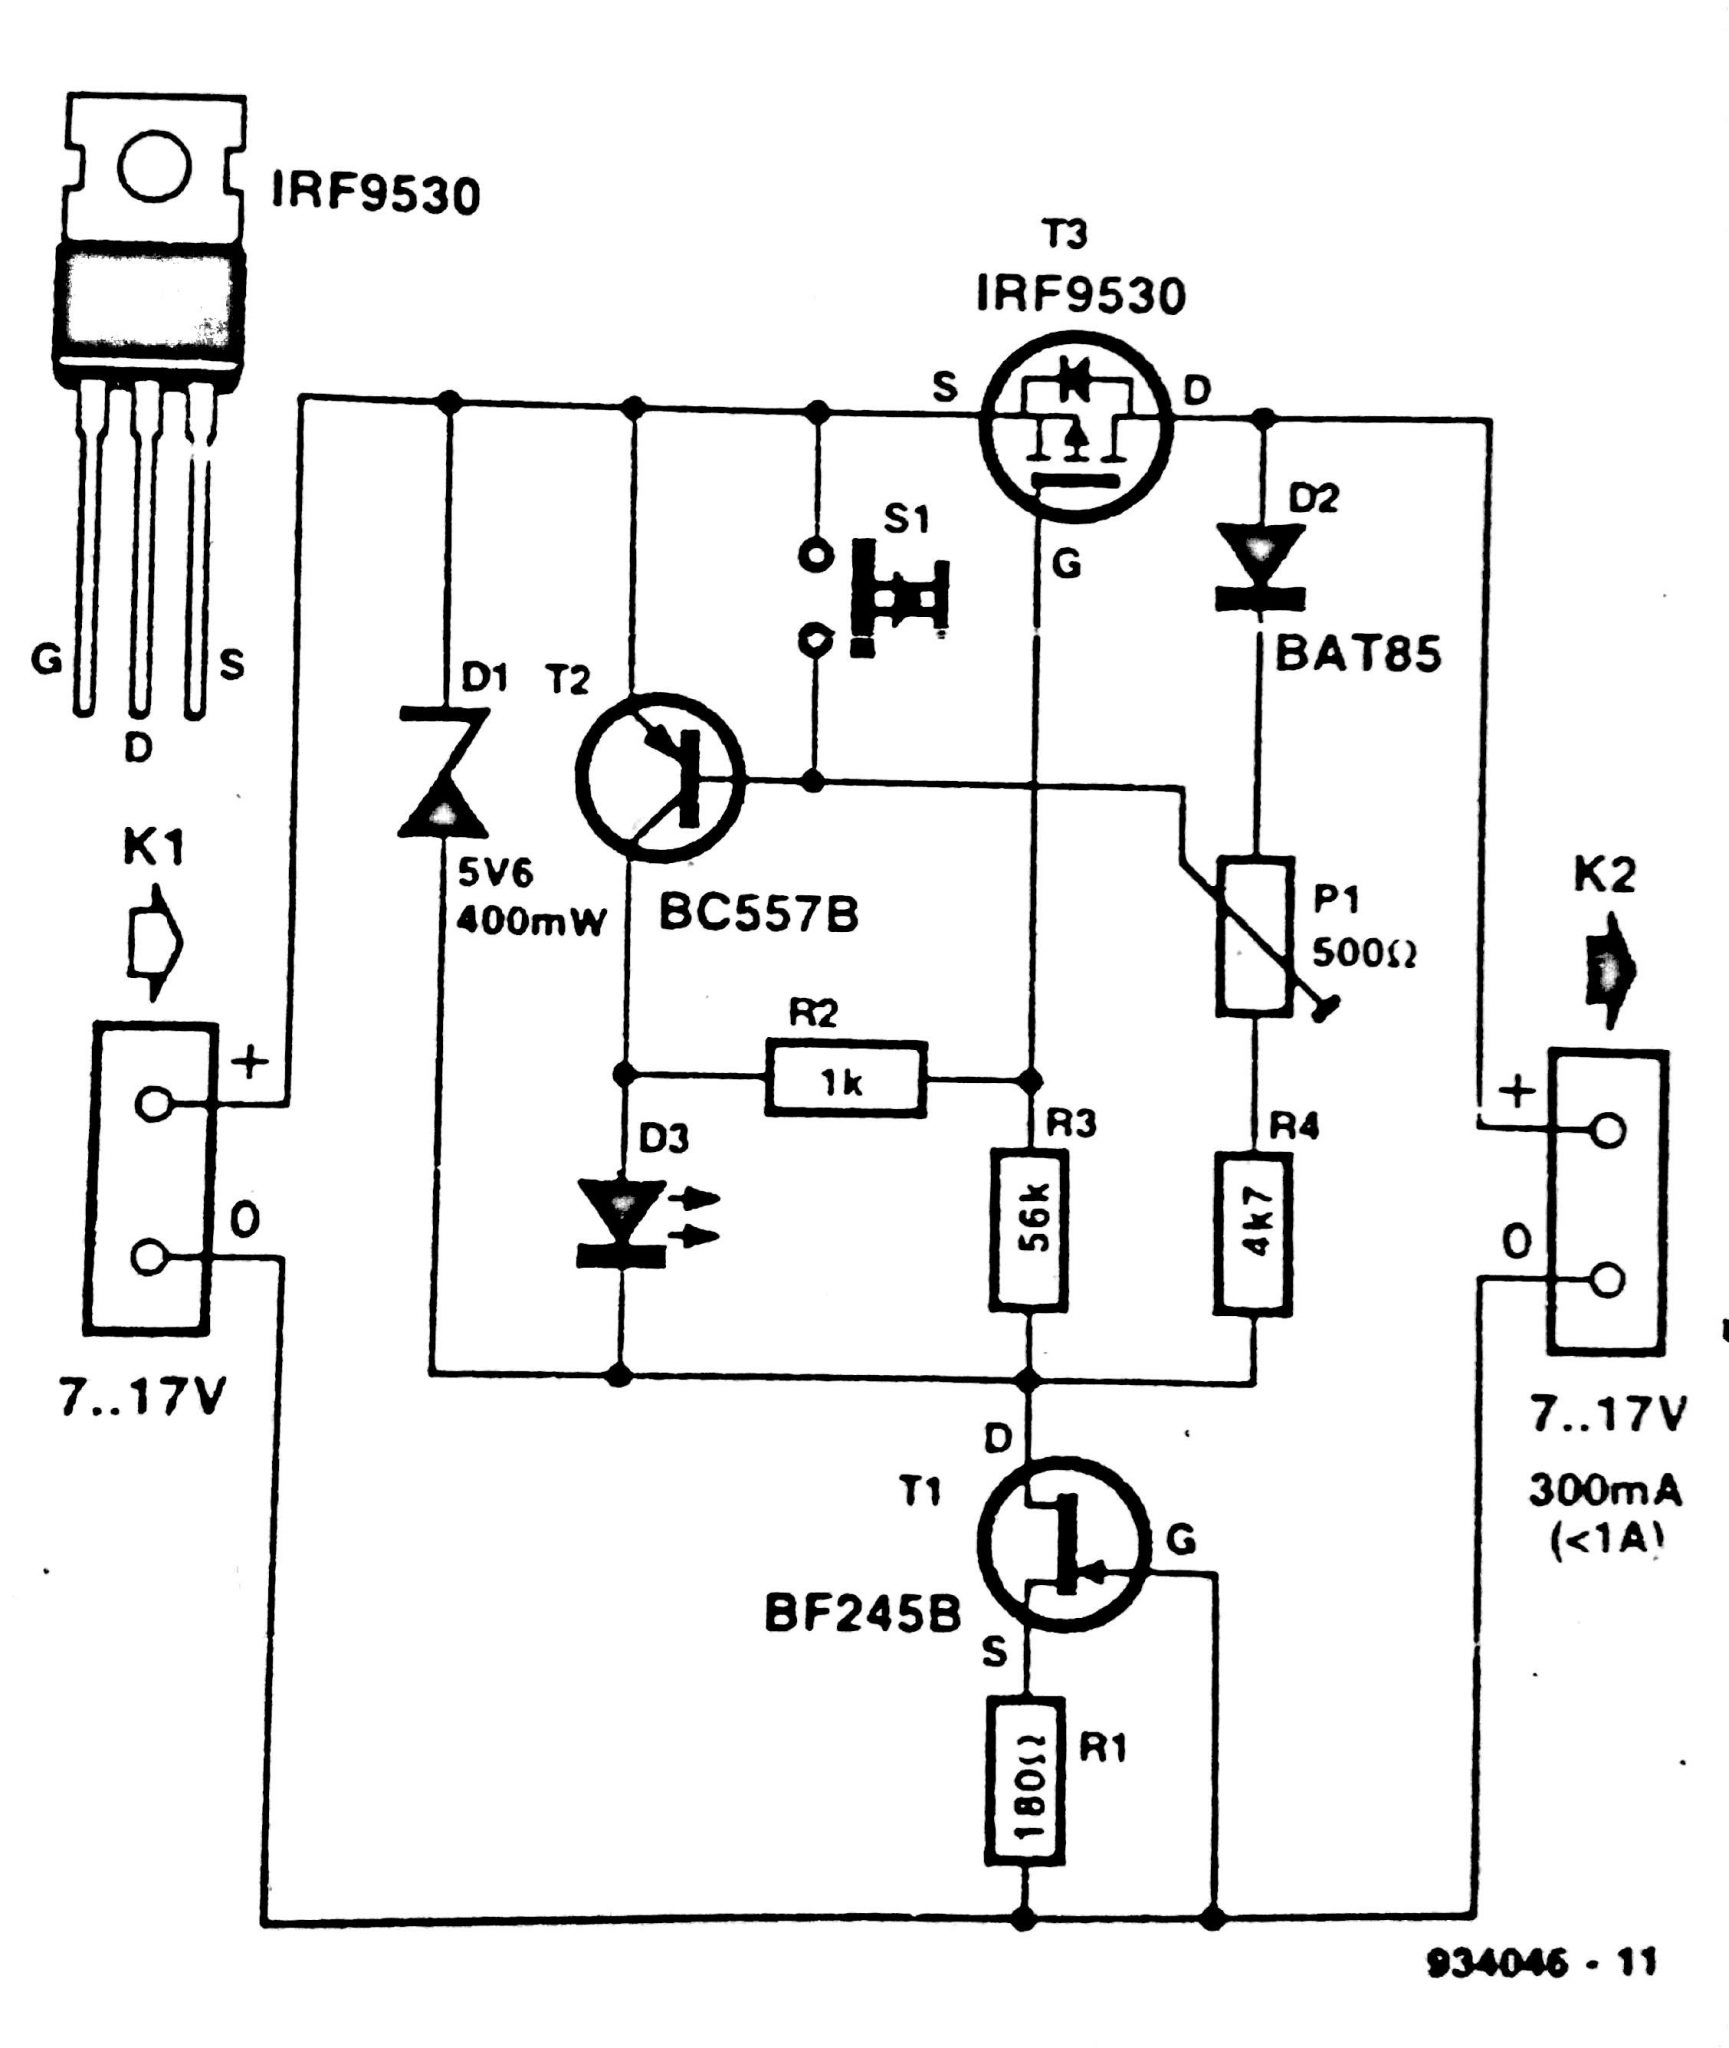 Fuse circuit diagram wiring info electronic fuse circuit diagram circuit diagramz rh circuit diagramz com fuse circuit diagram symbol electronic fuse circuit diagram swarovskicordoba Choice Image